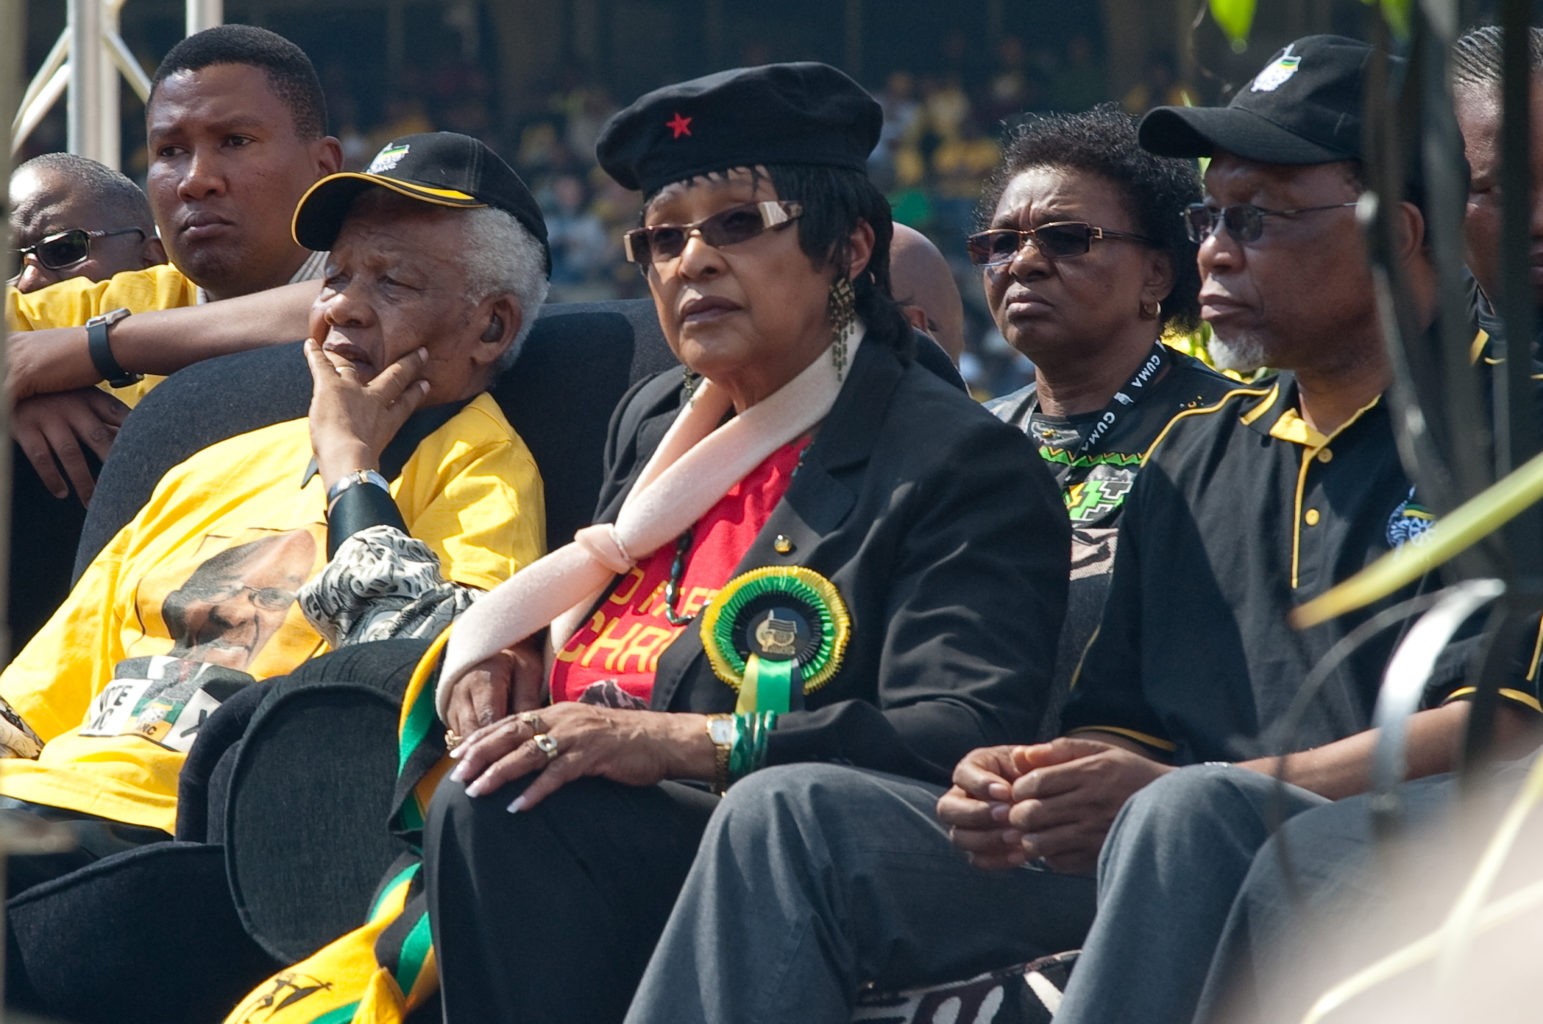 Former South African President Nelson Mandela, his former wife Winnie Madikizela-Mandela and interim South African President Kalema Motlanthe attend an election campaign rally at Ellis Park Stadium in Johannesburg to show support for ANC President and Presidential Candidate Jacob Zuma, in Johannesburg, South Africa, on April 19, 2009. (Erik Forster/Abaca Press/TNS)